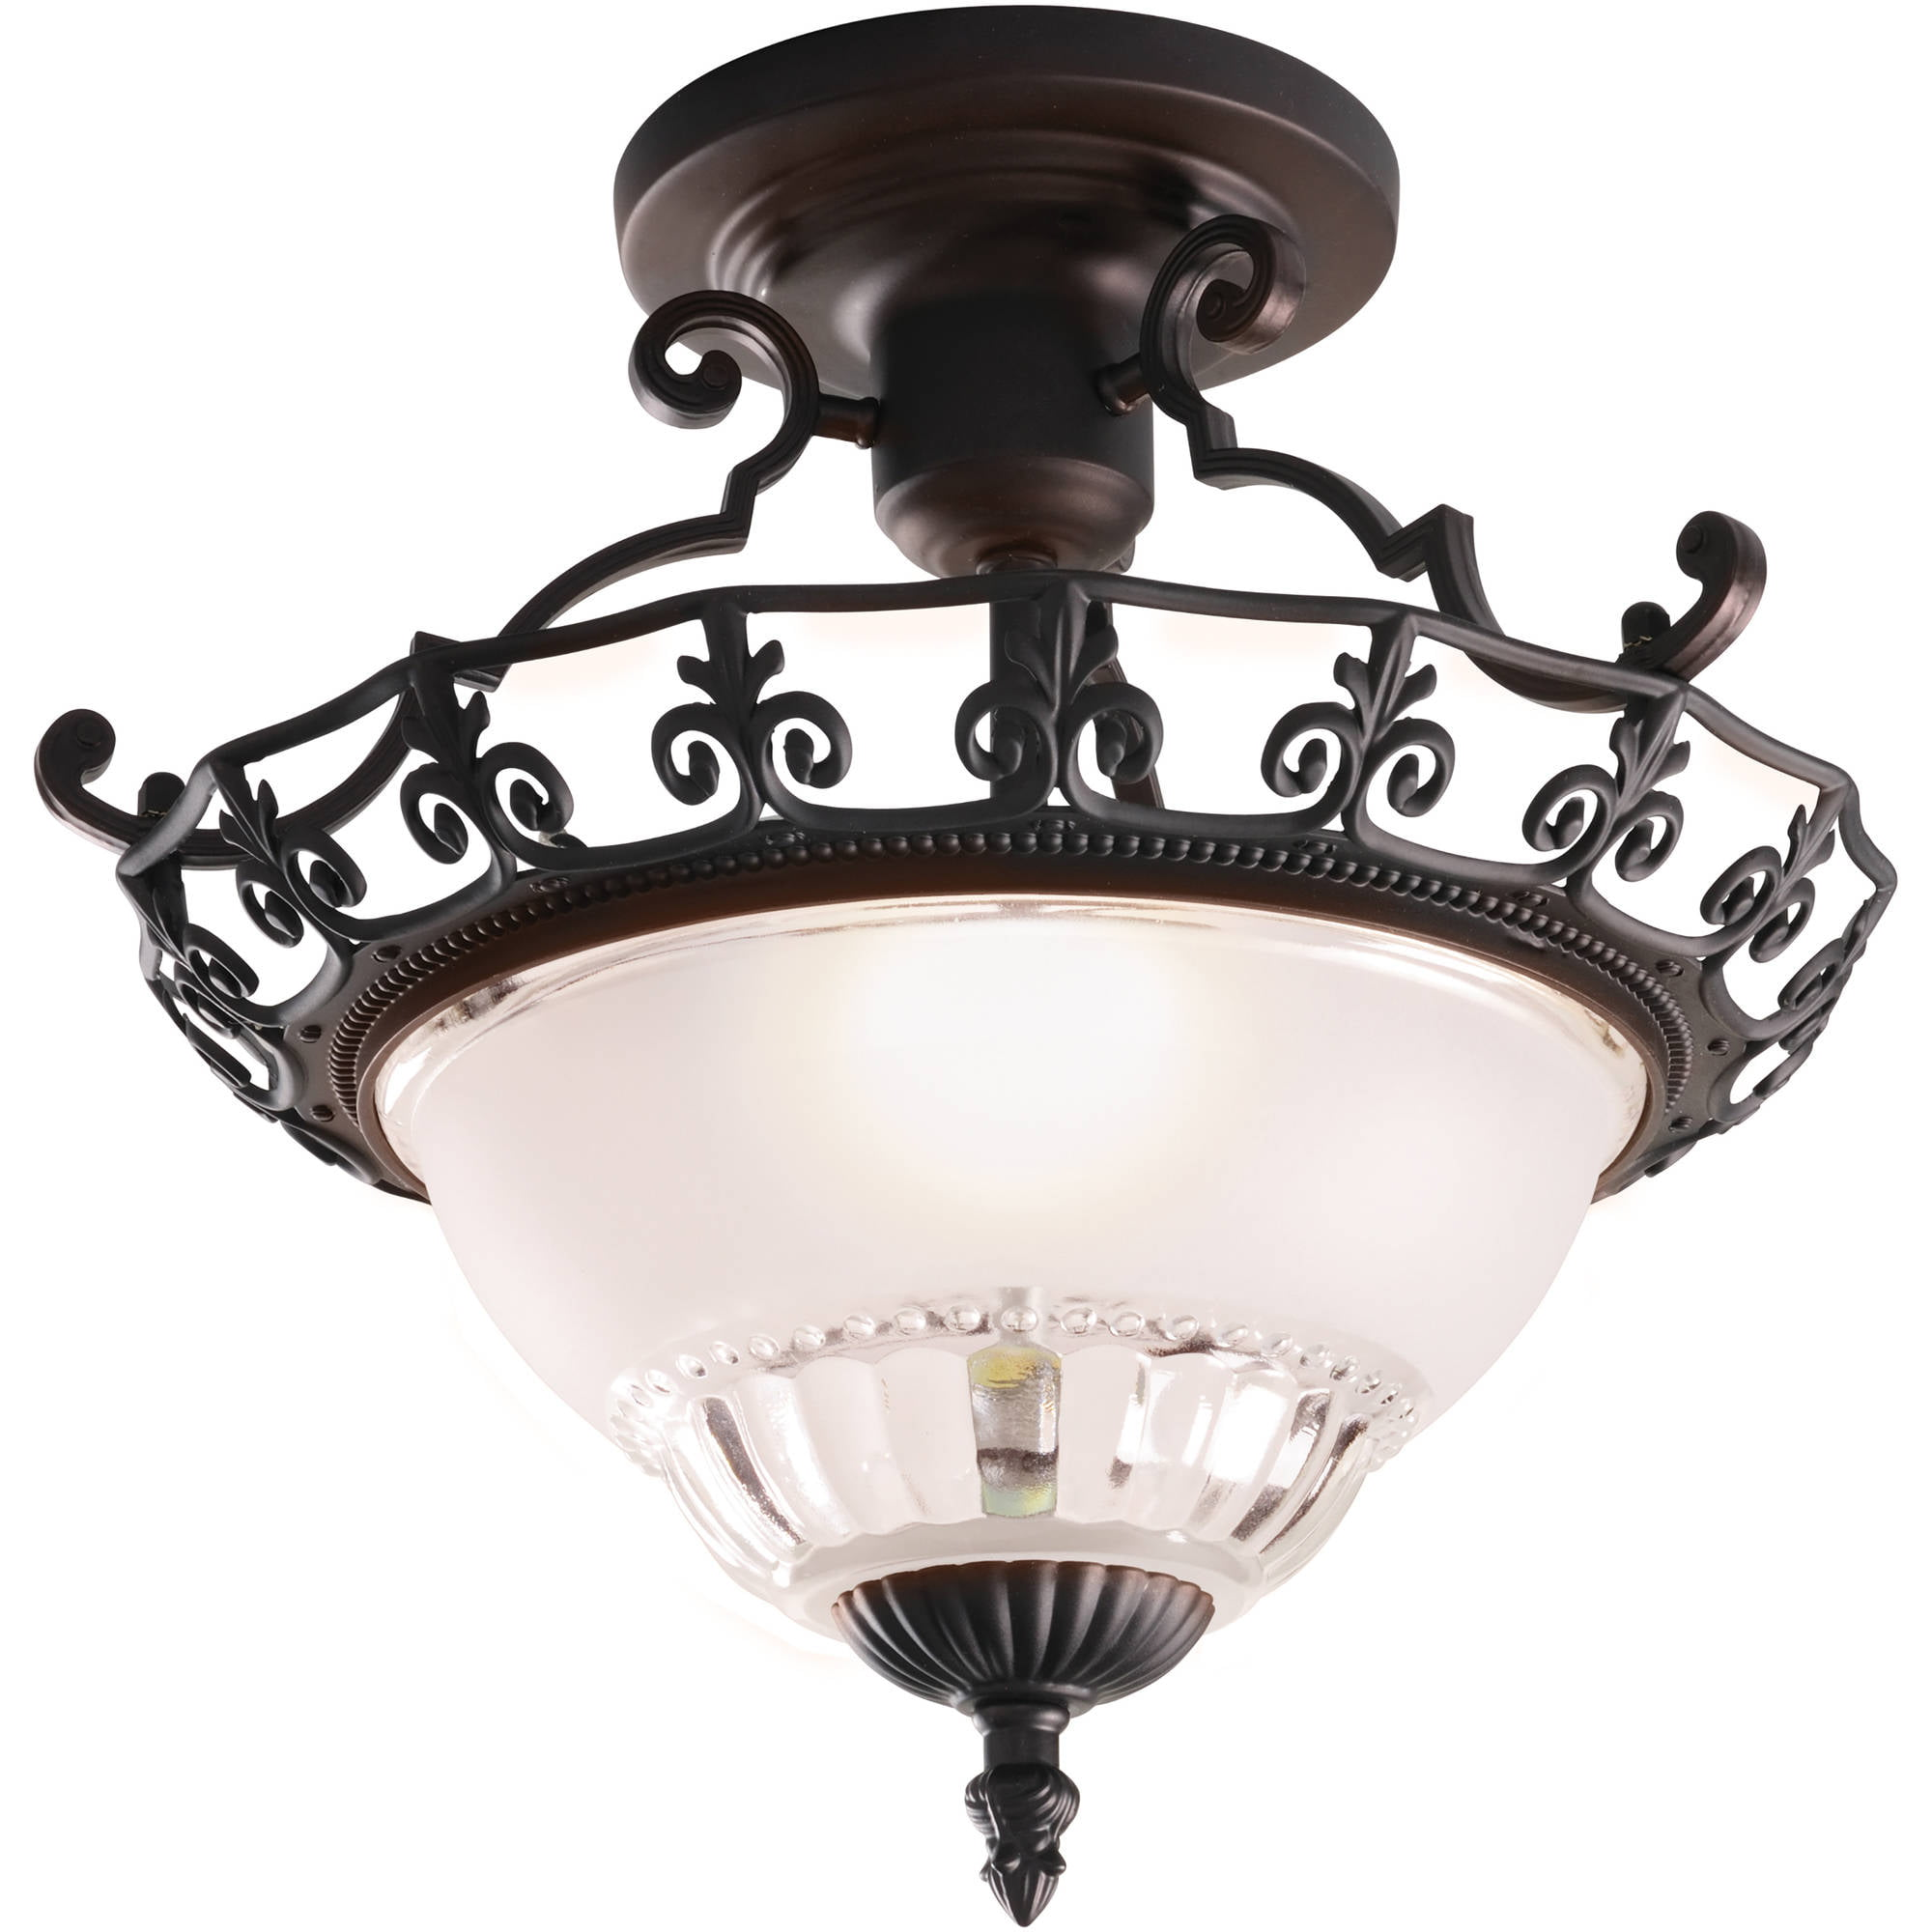 Outstanding Chapter Indoor 11 25 Ceiling Semi Flush Mount Oil Rubbed Bronze Interior Design Ideas Philsoteloinfo